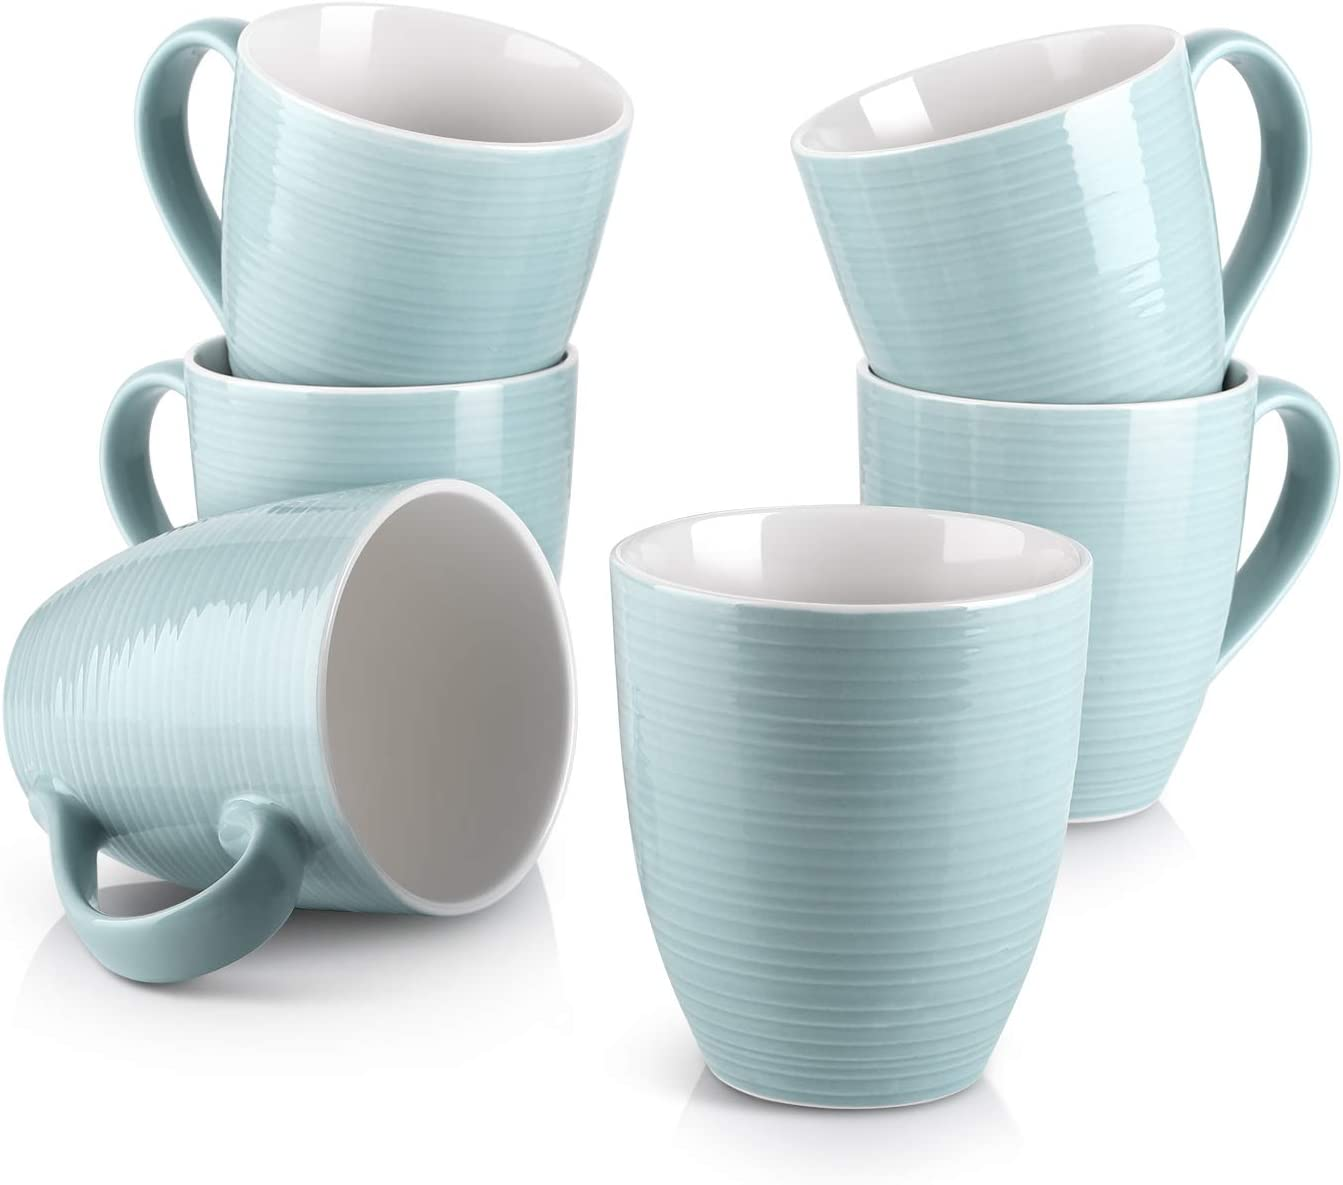 DOWAN Coffee Mugs Set - 17 Oz Large Coffee Mug Set of 6 with Handle, Ceramic Mugs for Coffee Tea and Cocoa, Turquoise